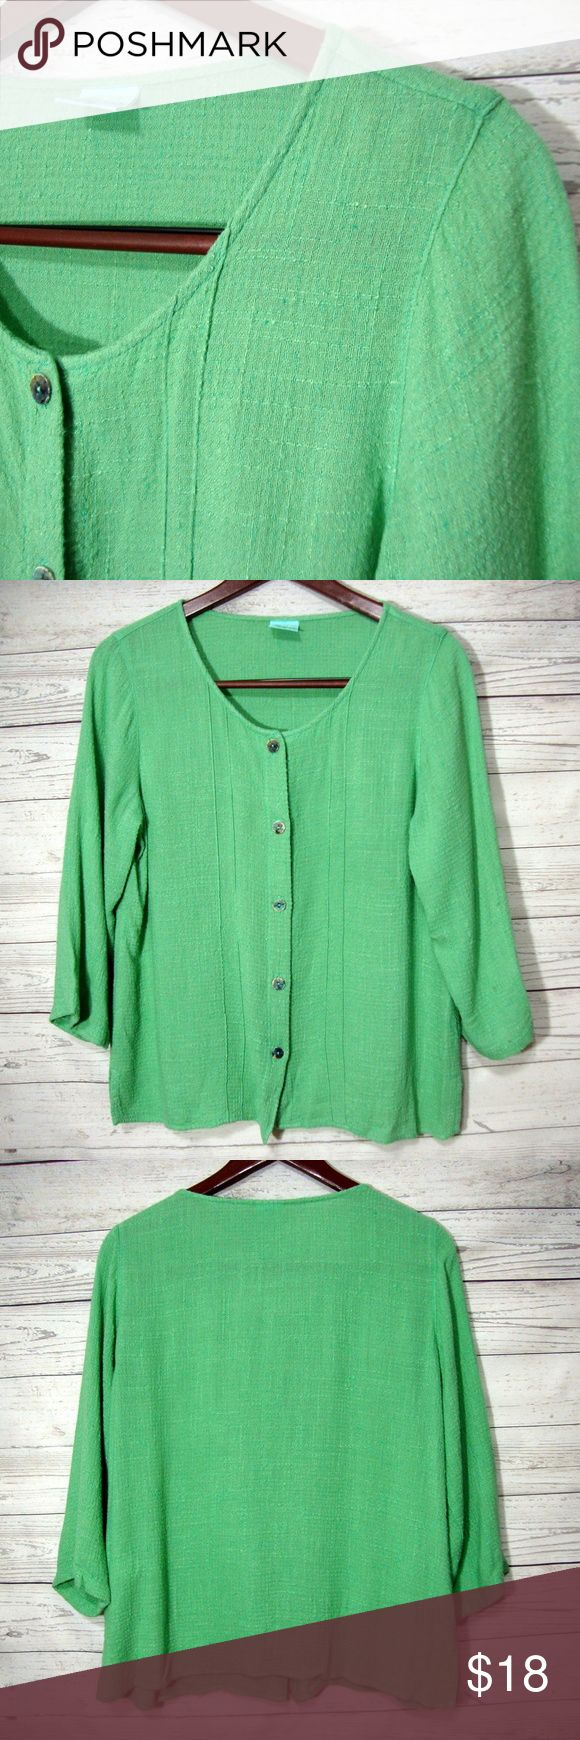 Color Me Cotton CMC Womens Green Shirt Small S Top From CMC  Size S  Laying flat it measures: underarm to underarm - 21 inches across from back of neck to bottom - 22.5 inches  Color: green  Gently used  From a smoke free and pet friendly home Color Me Cotton Tops Blouses